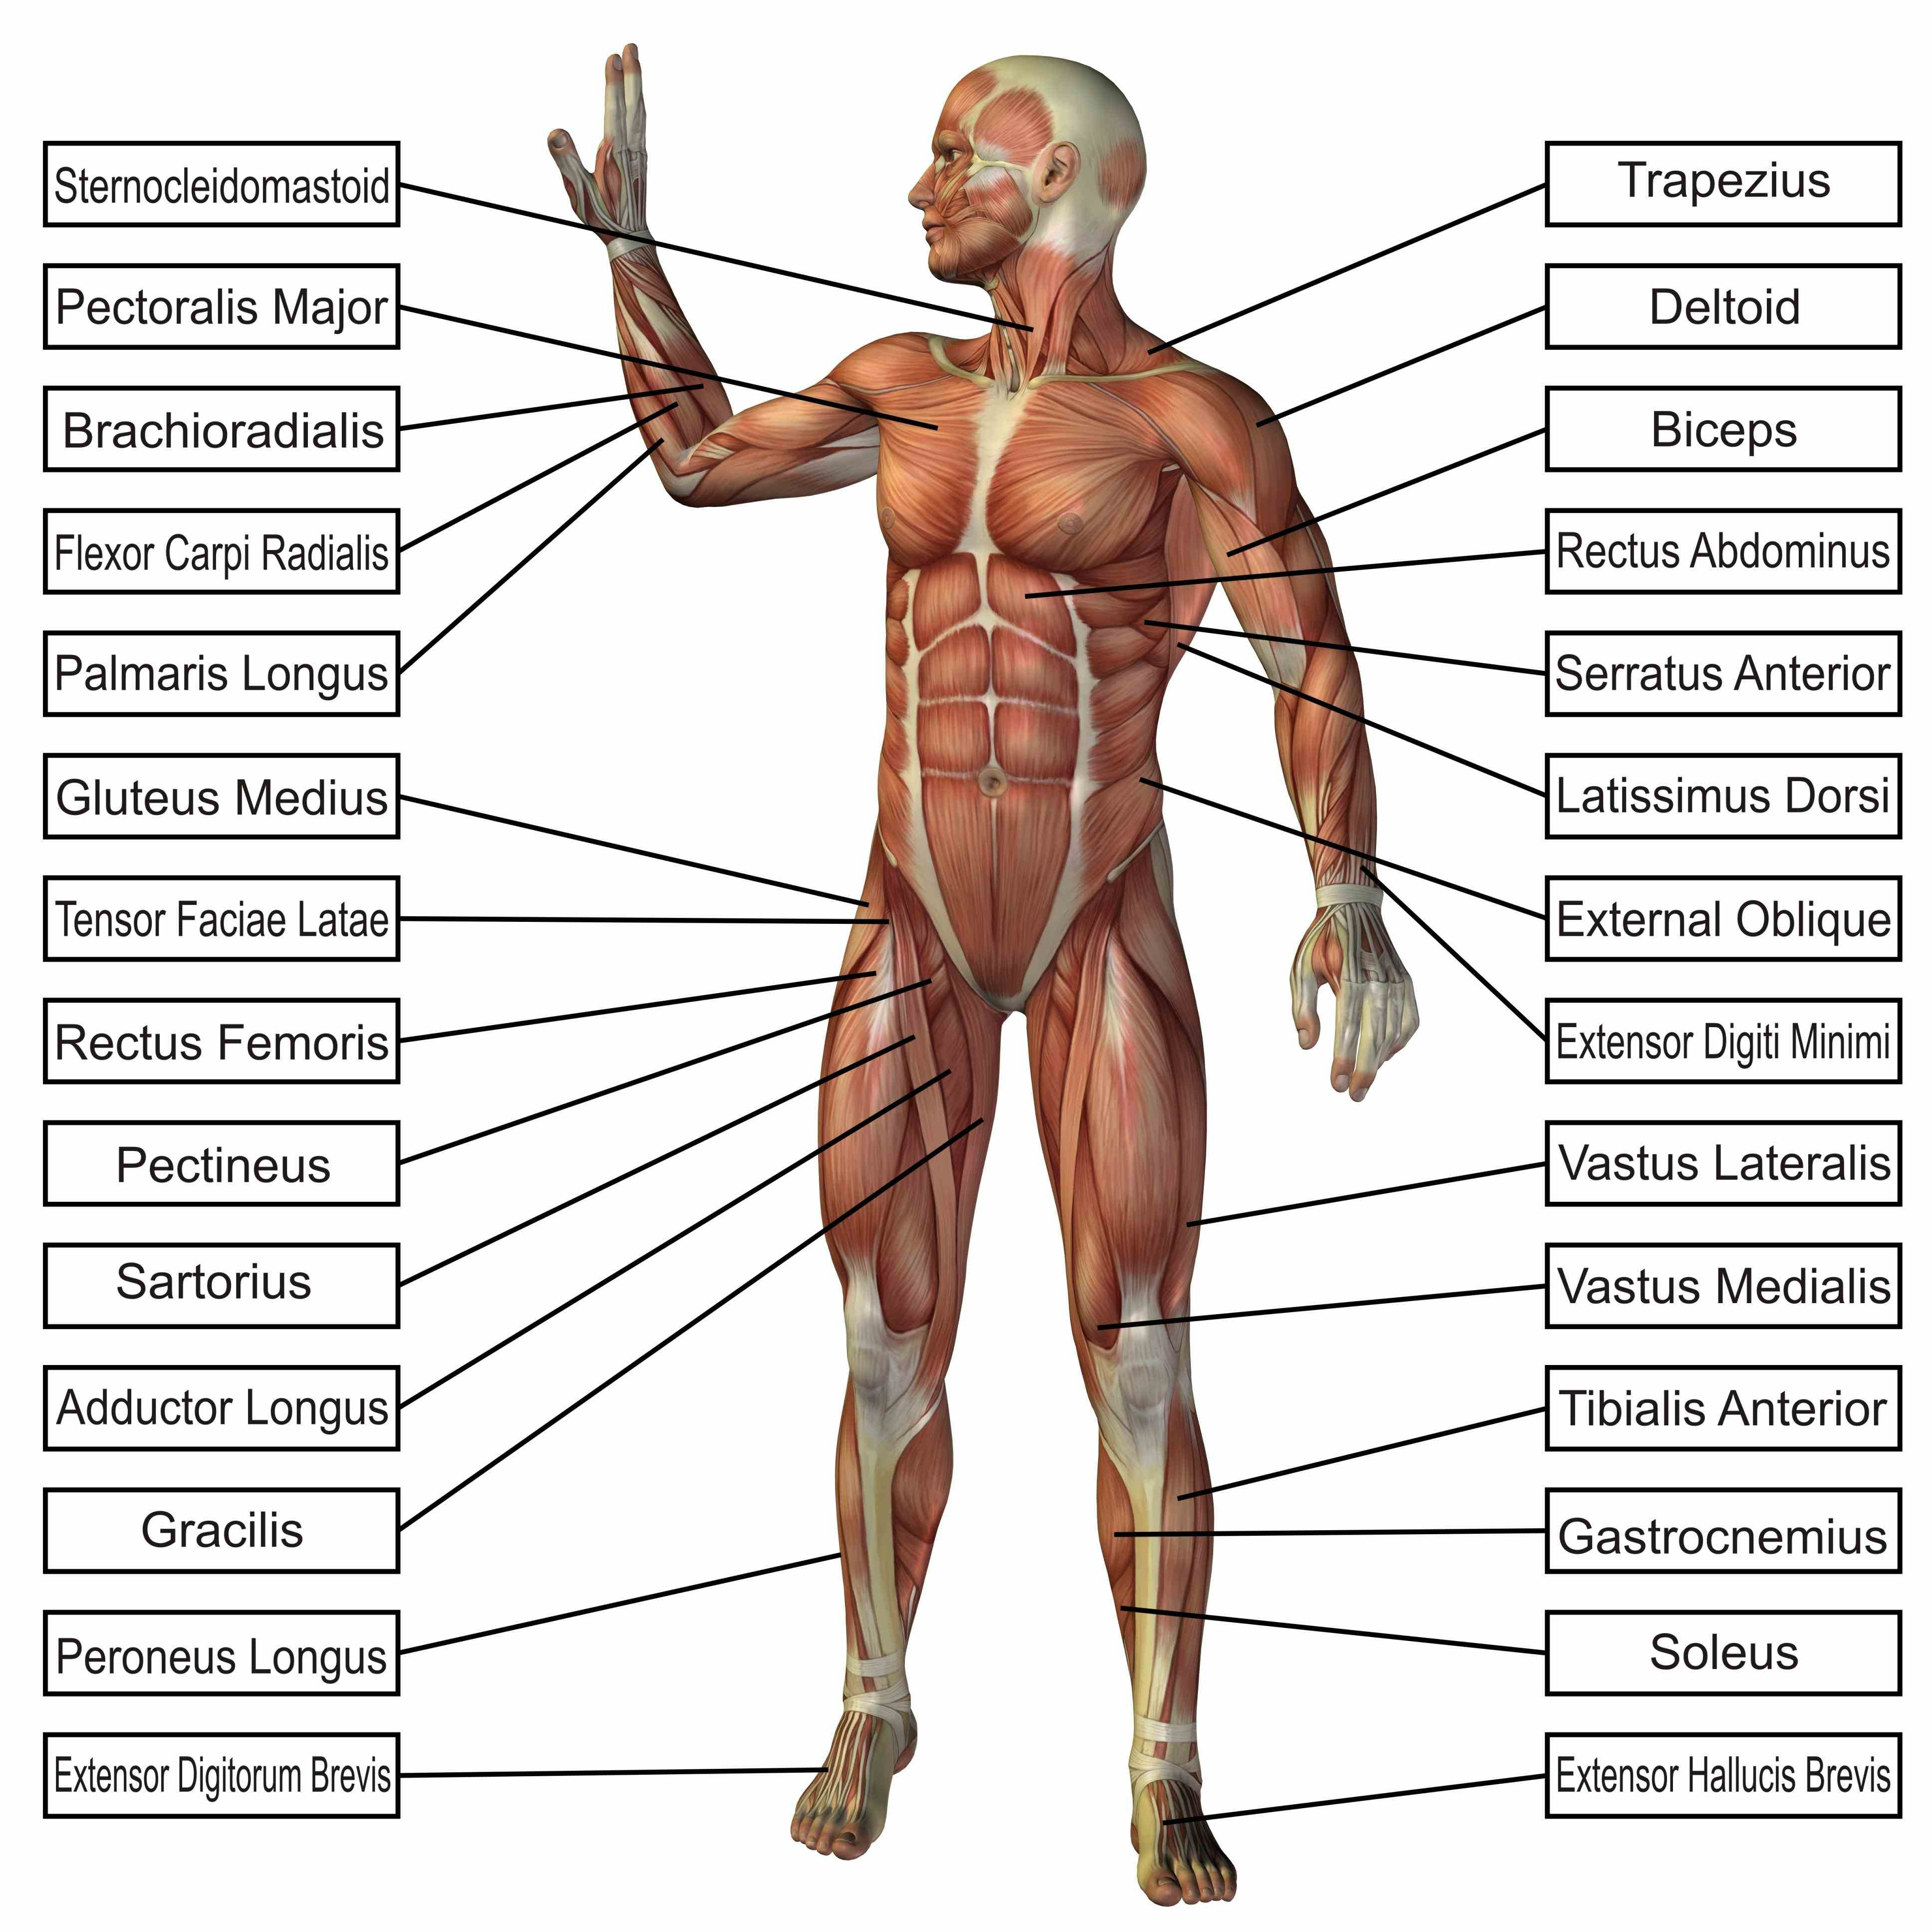 the commonly called belly is body space learn Pictures Of Anatomy Of The Human Body about human anatomy including